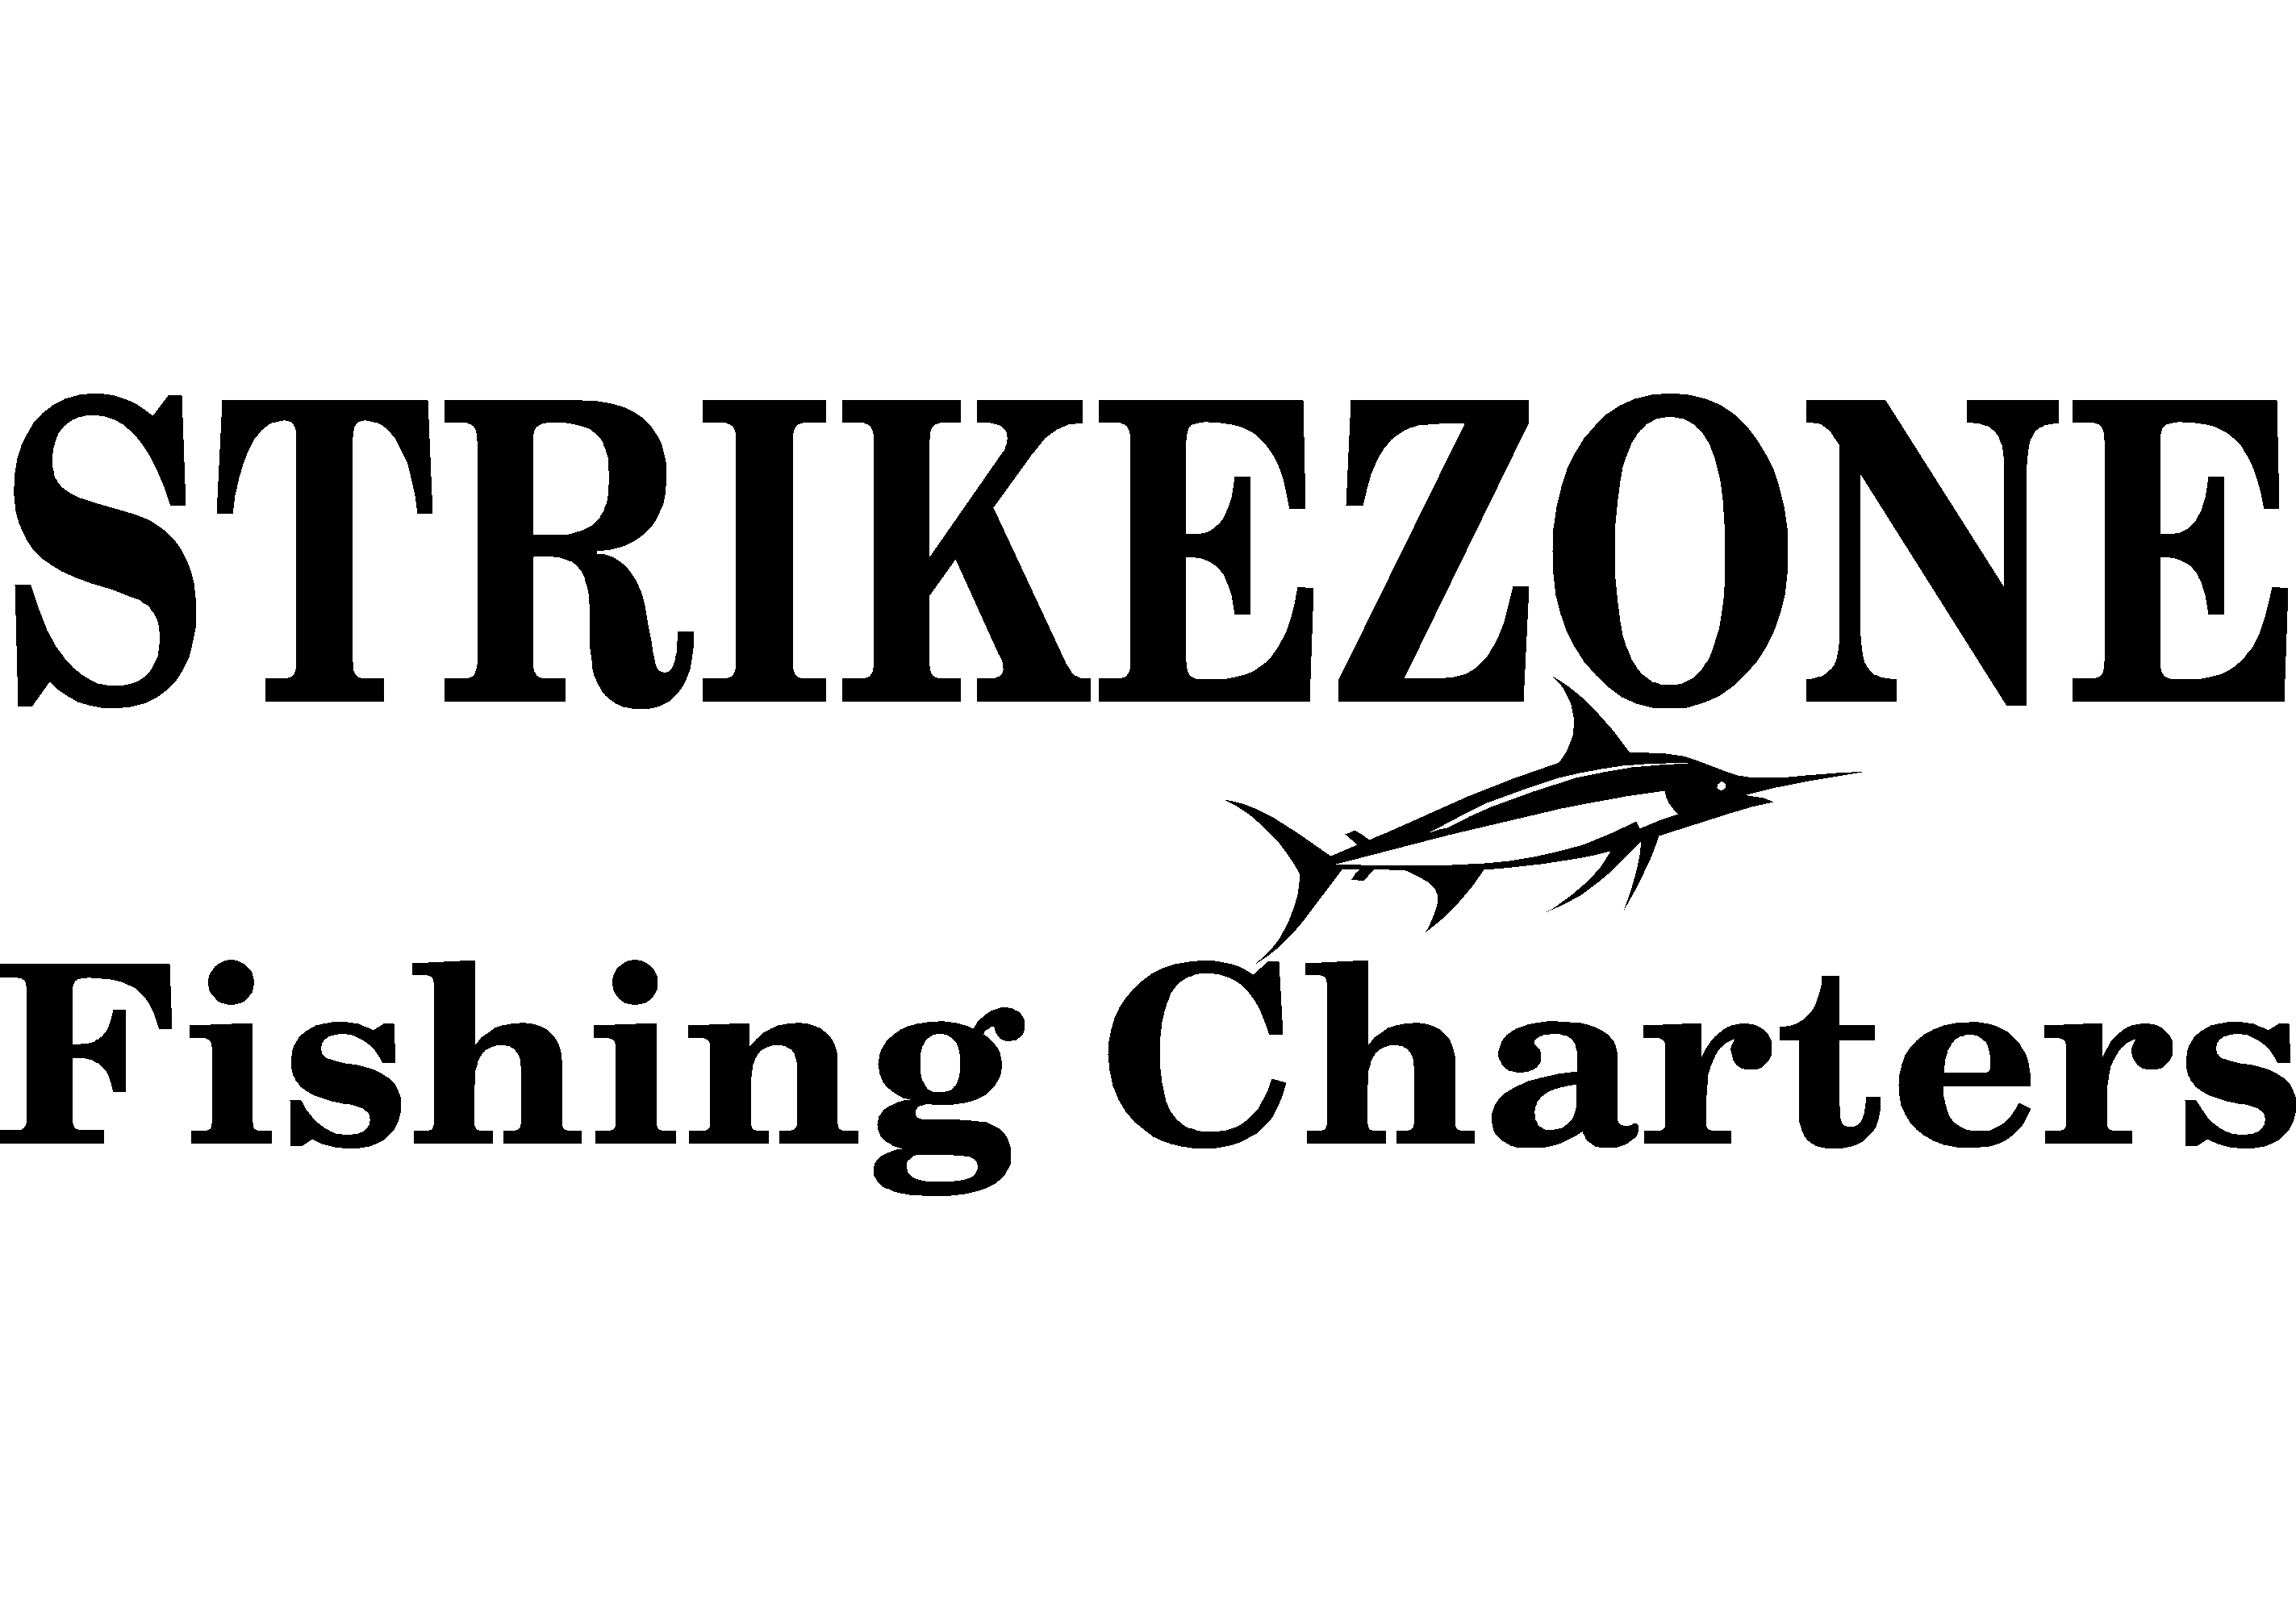 Strike-zone-Bb